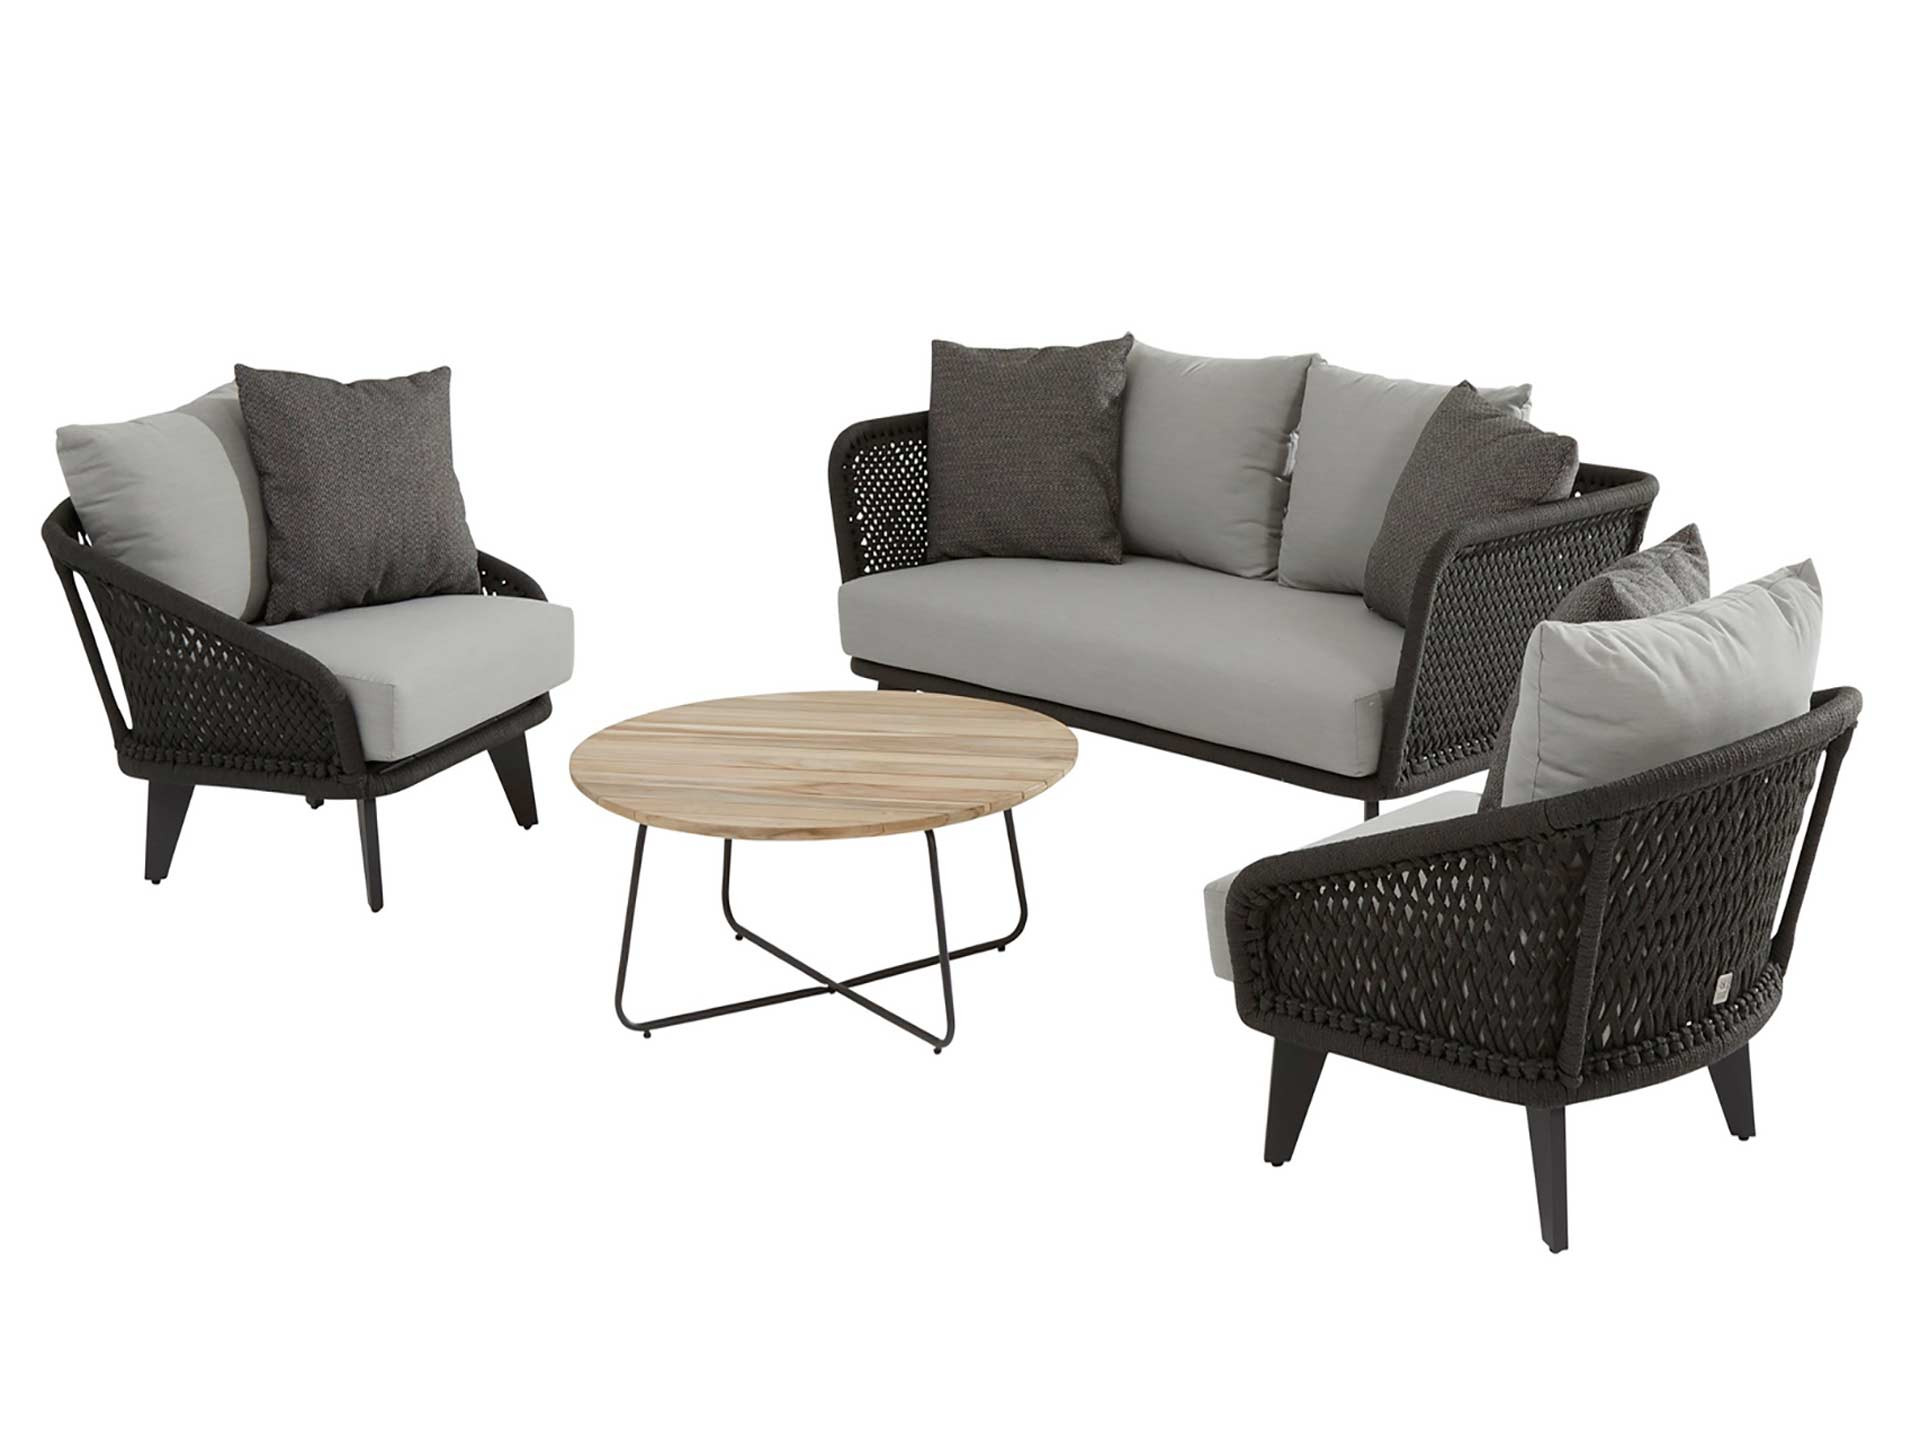 Belize Lounge Set 4-Teilig